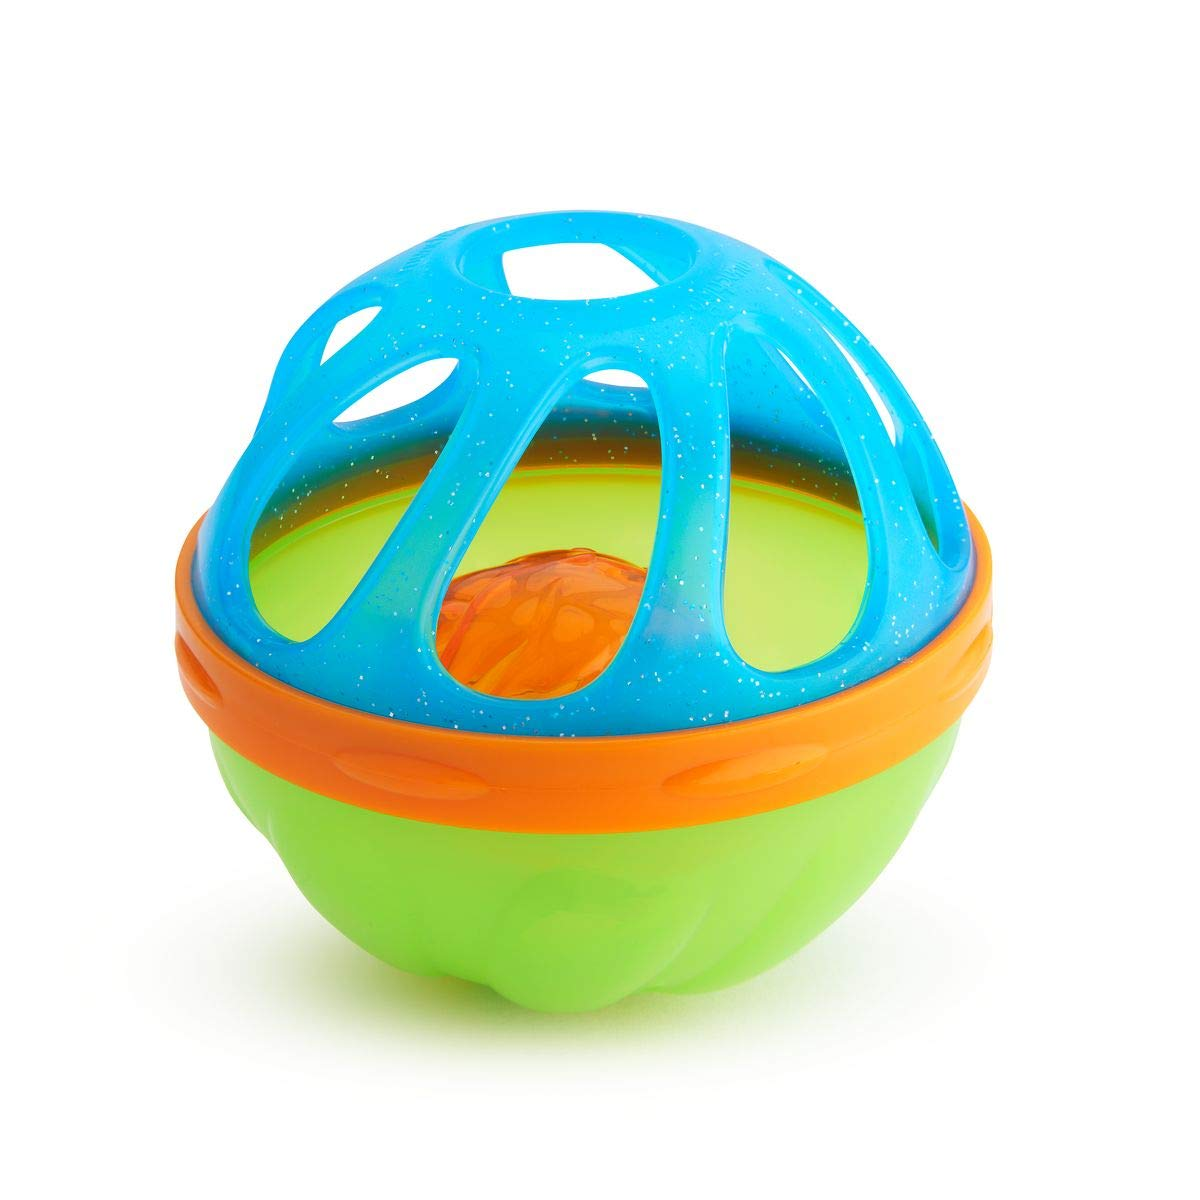 Munchkin Baby Bath Ball Toy (Multicoloured) 011308